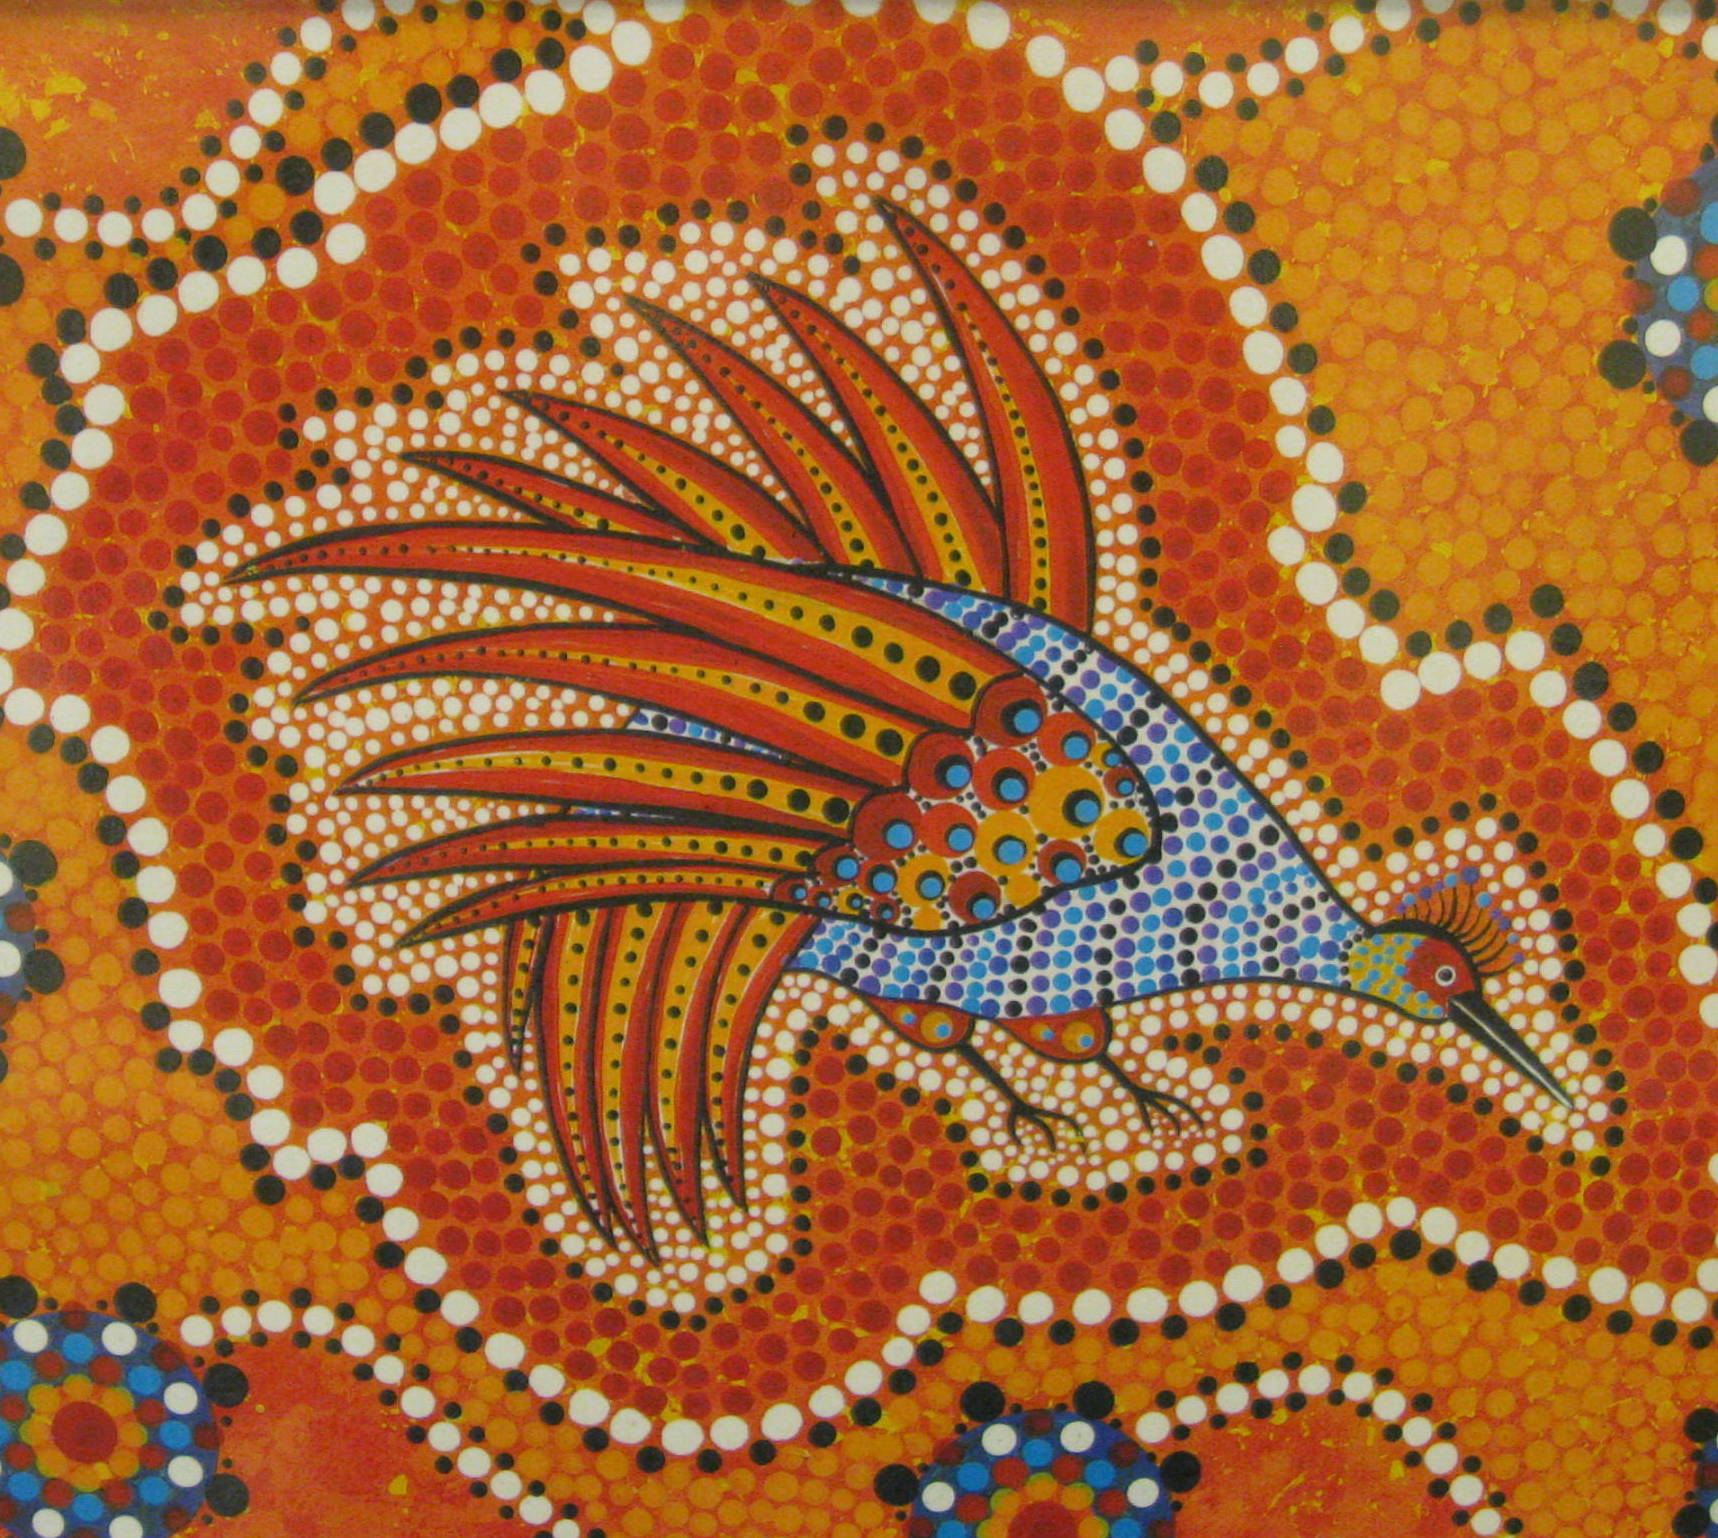 Aboriginal Paintings - Lessons - Tes Teach